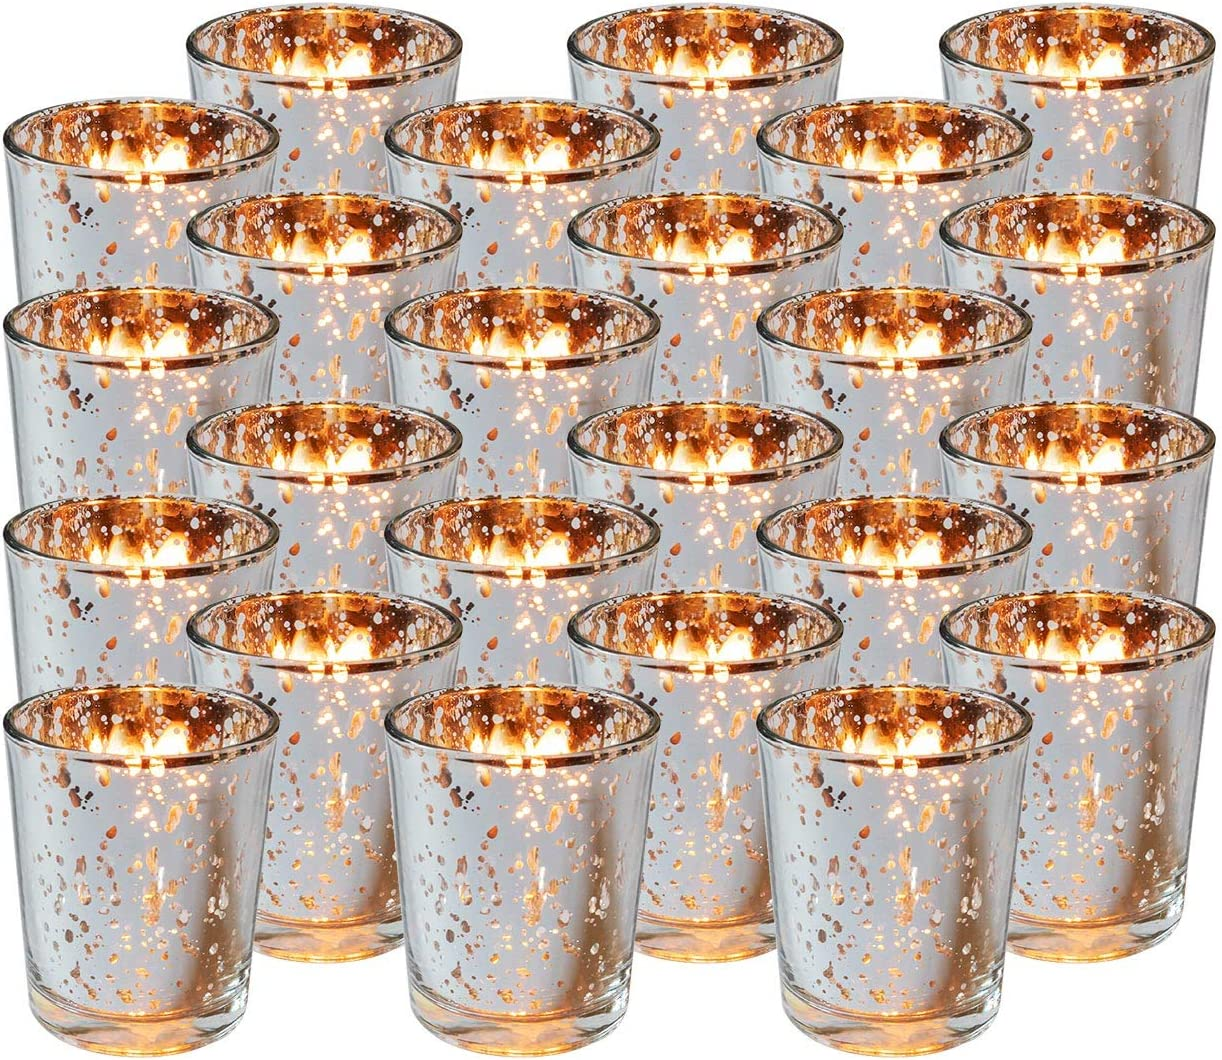 Royal Imports Silver Mercury Glass Votive Candle Holder, Table Centerpiece Tealight Decoration for Elegant Dinner, Party, Wedding, Holiday, Set of 24 (Unfilled)